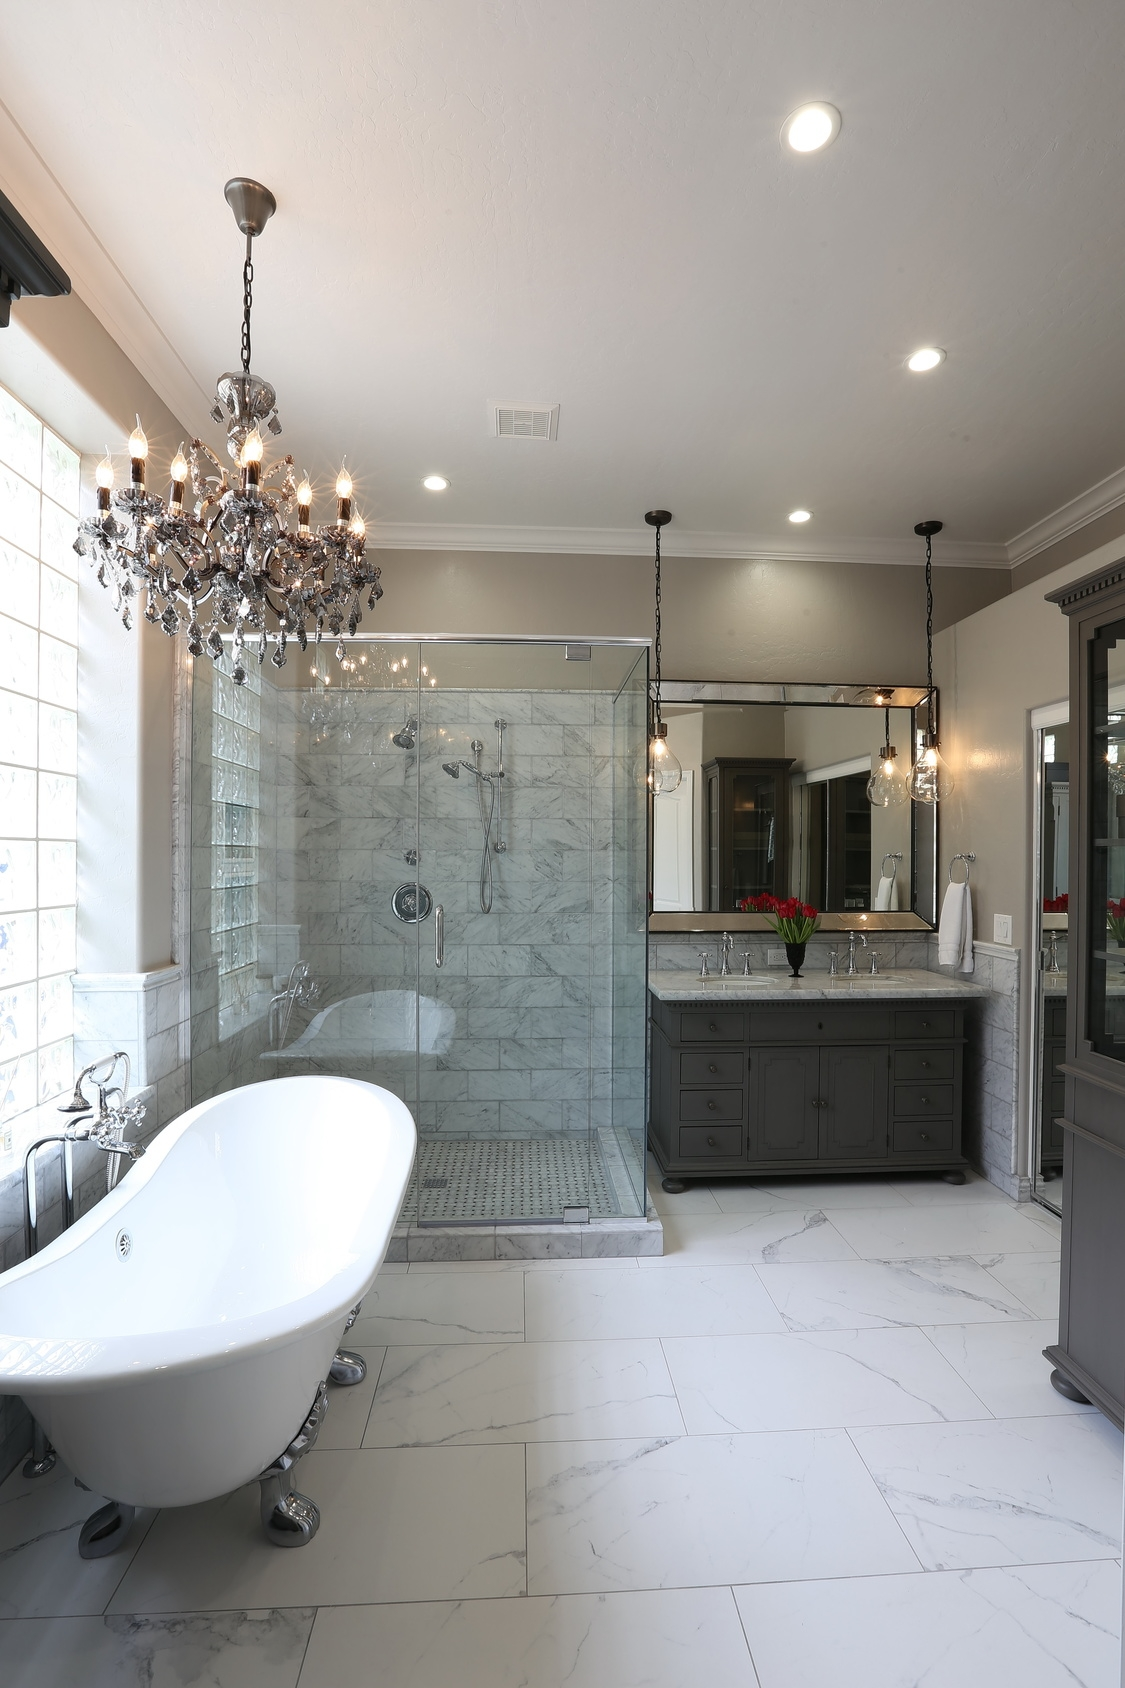 Highland Bathroom Renovation Doppler Construction Bathroom - Standard bathroom renovation cost